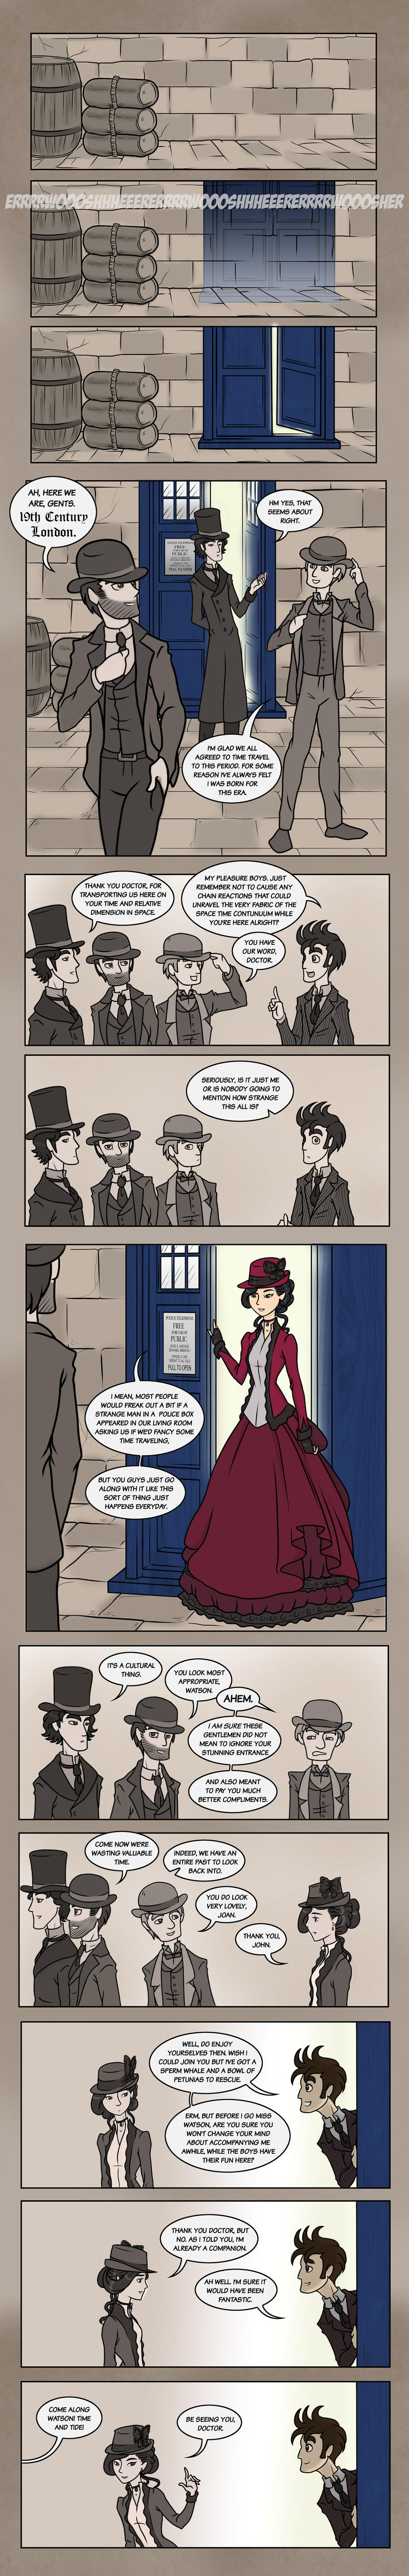 Elementary/Sherlock SPECIAL: Part One by maryfgr23